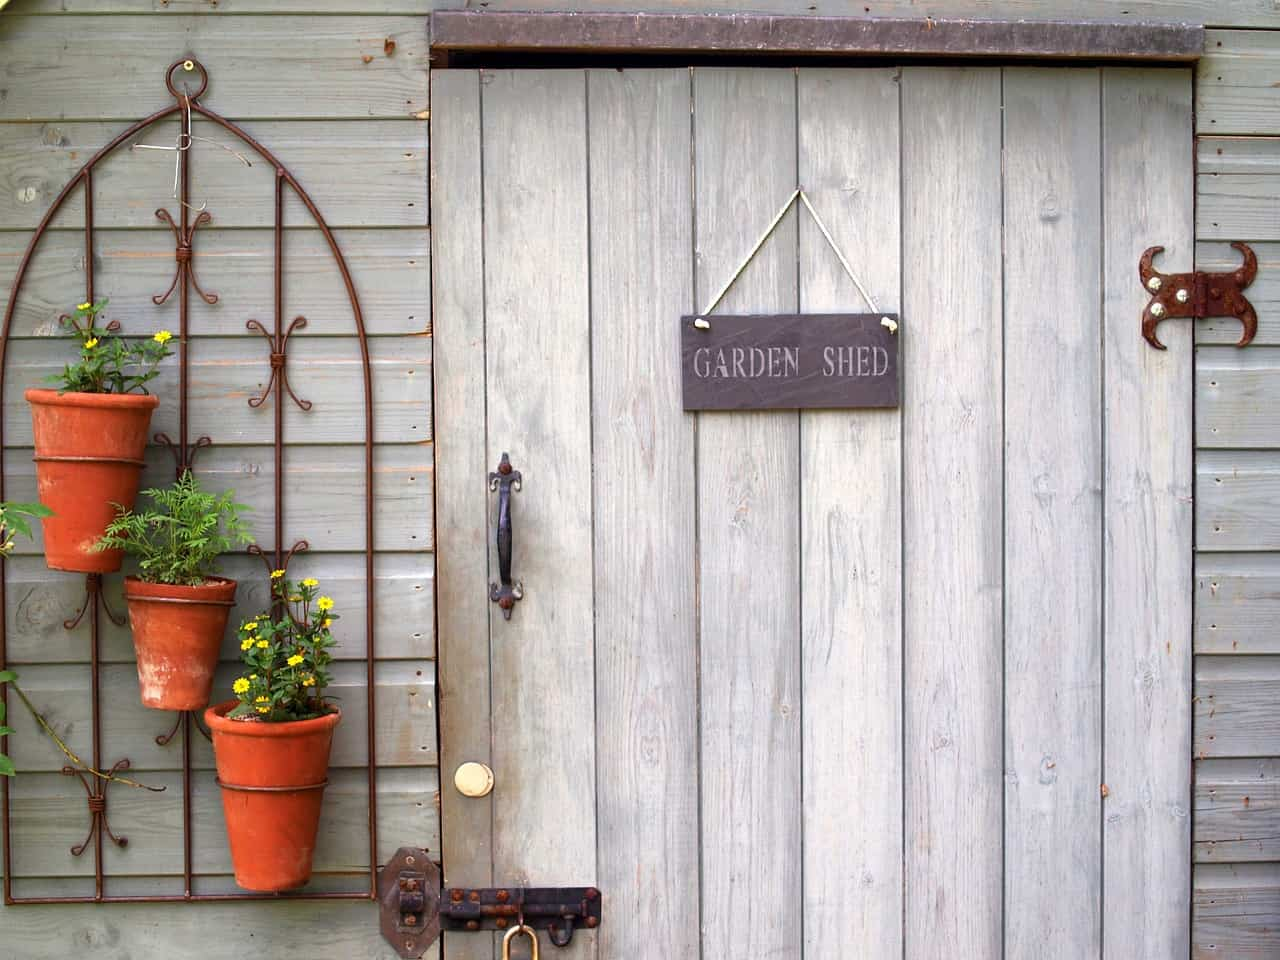 17 Clever Uses of a Garden Shed